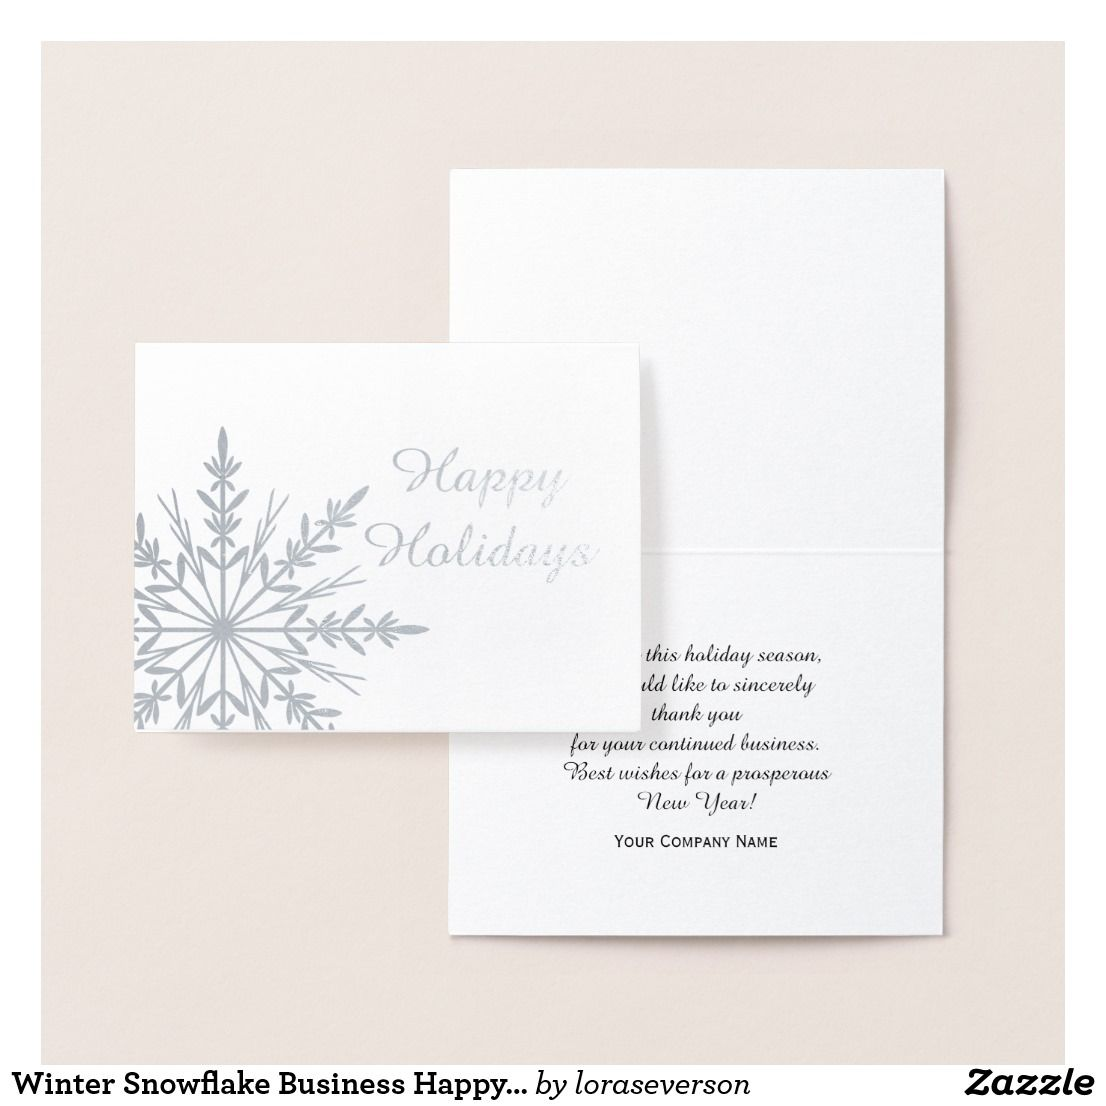 Winter Snowflake Business Happy Holidays Foil Card Zazzle Com